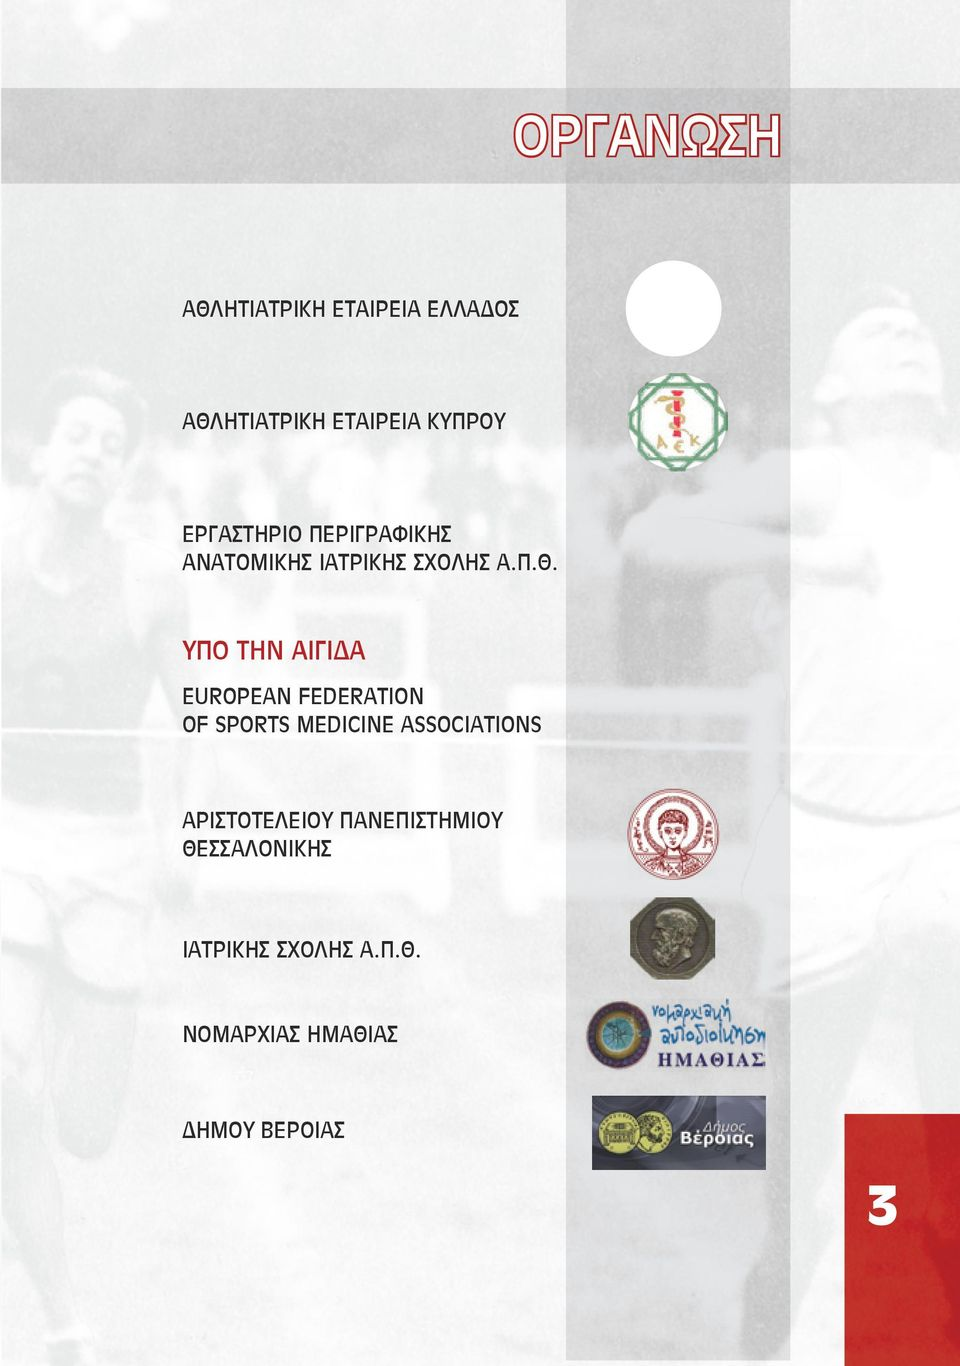 ΥΠΟ ΤΗΝ ΑΙΓΙΔΑ EUROPEAN FEDERATION OF SPORTS MEDICINE ASSOCIATIONS